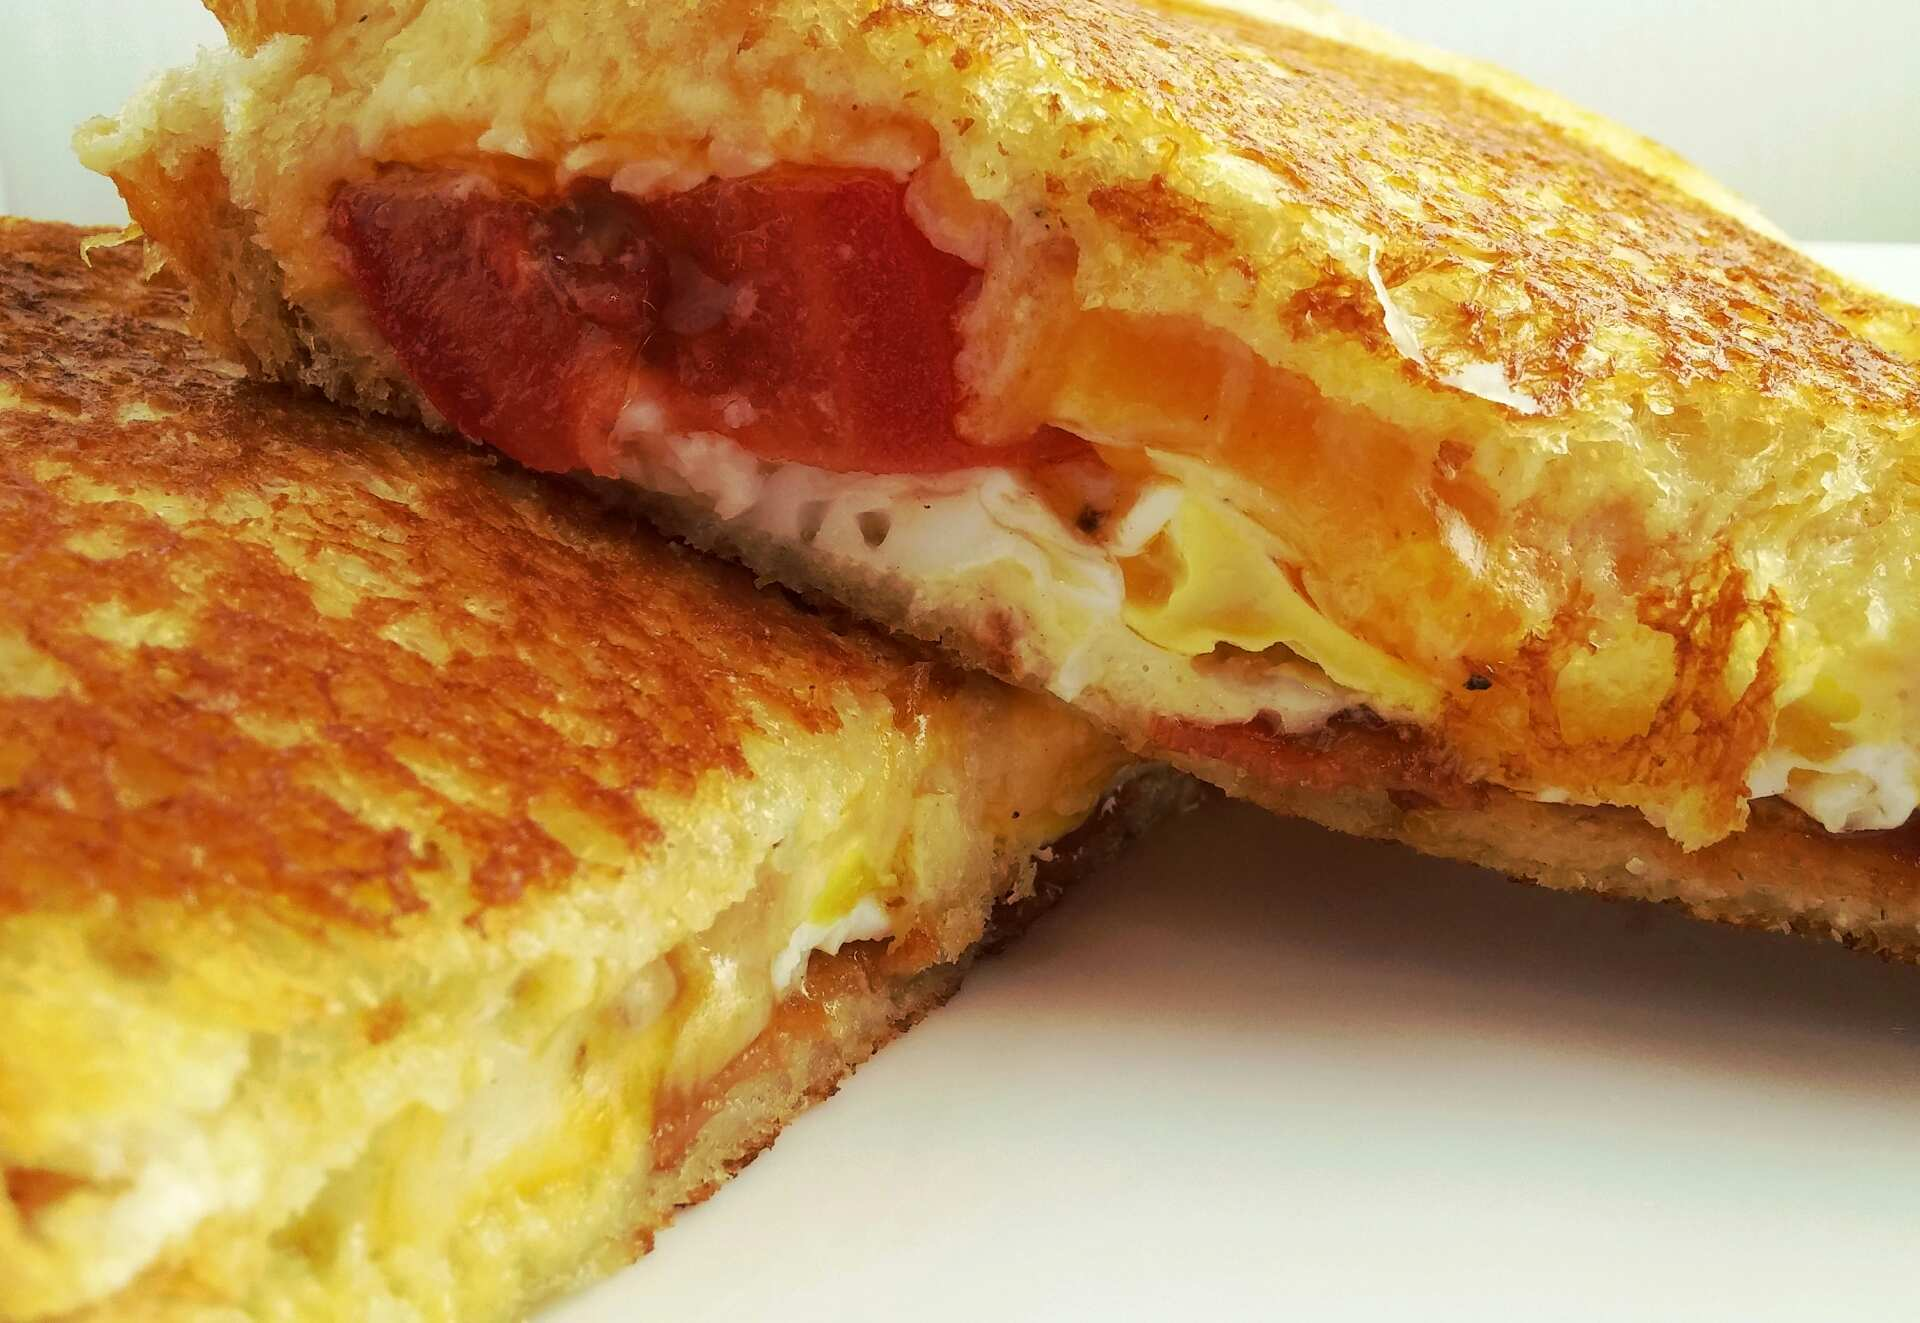 imbattuto x catturare Acquista autentico My $43 best-ever grilled cheese | the south in my mouth